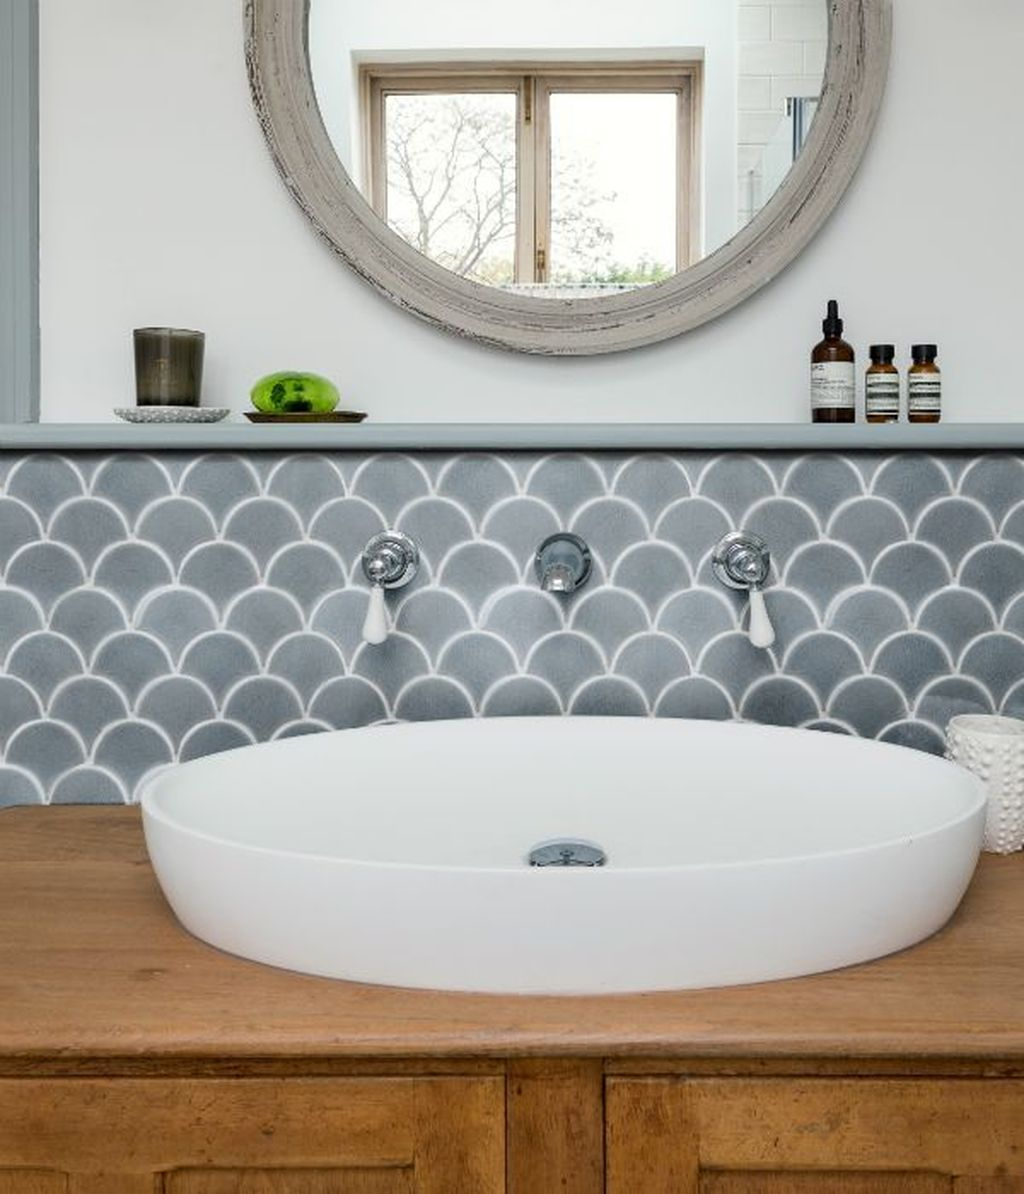 Inspiring Unique Bathroom Ideas That You Should Try 29